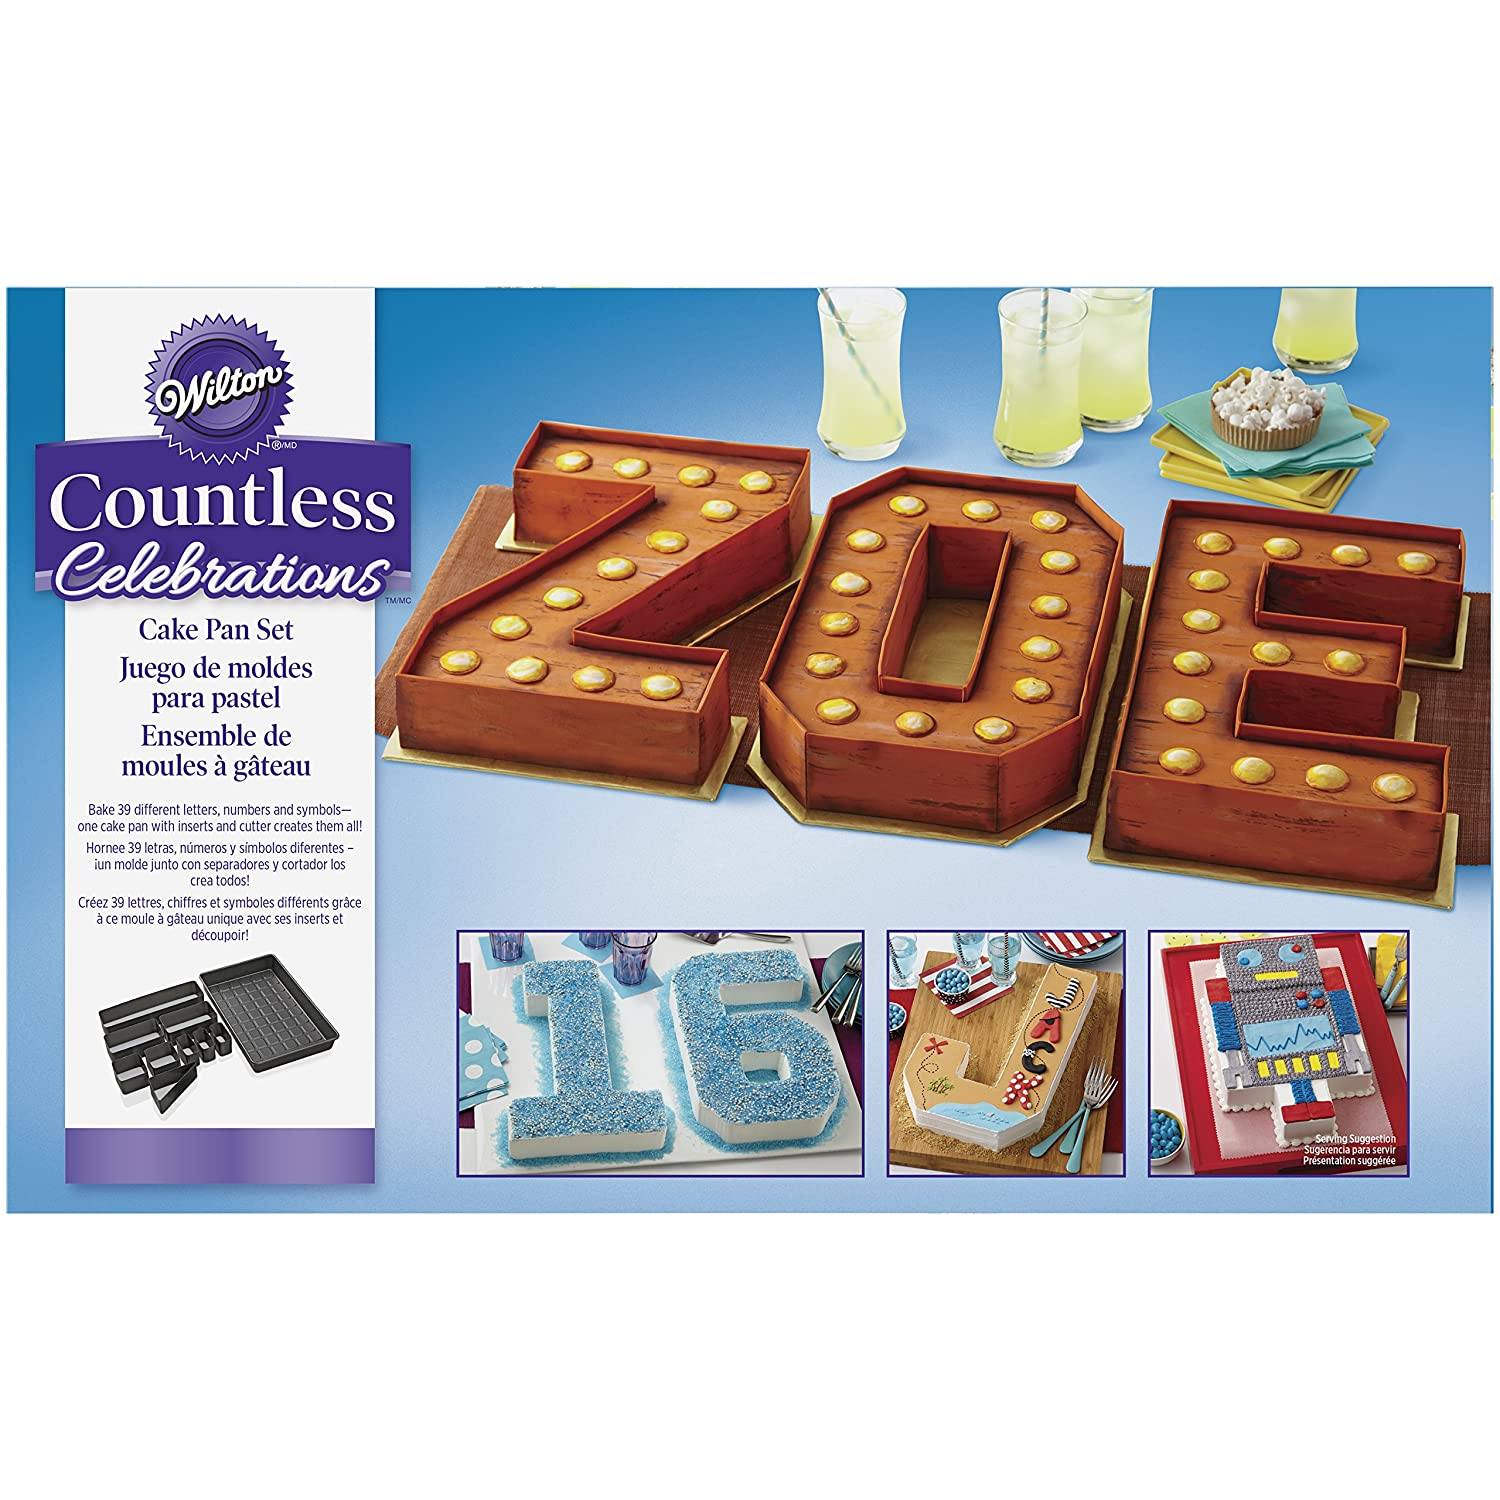 Wilton Countless Celebrations Cake Pan Set, 10-Piece Letter and Number Cake Pan 2105-0801